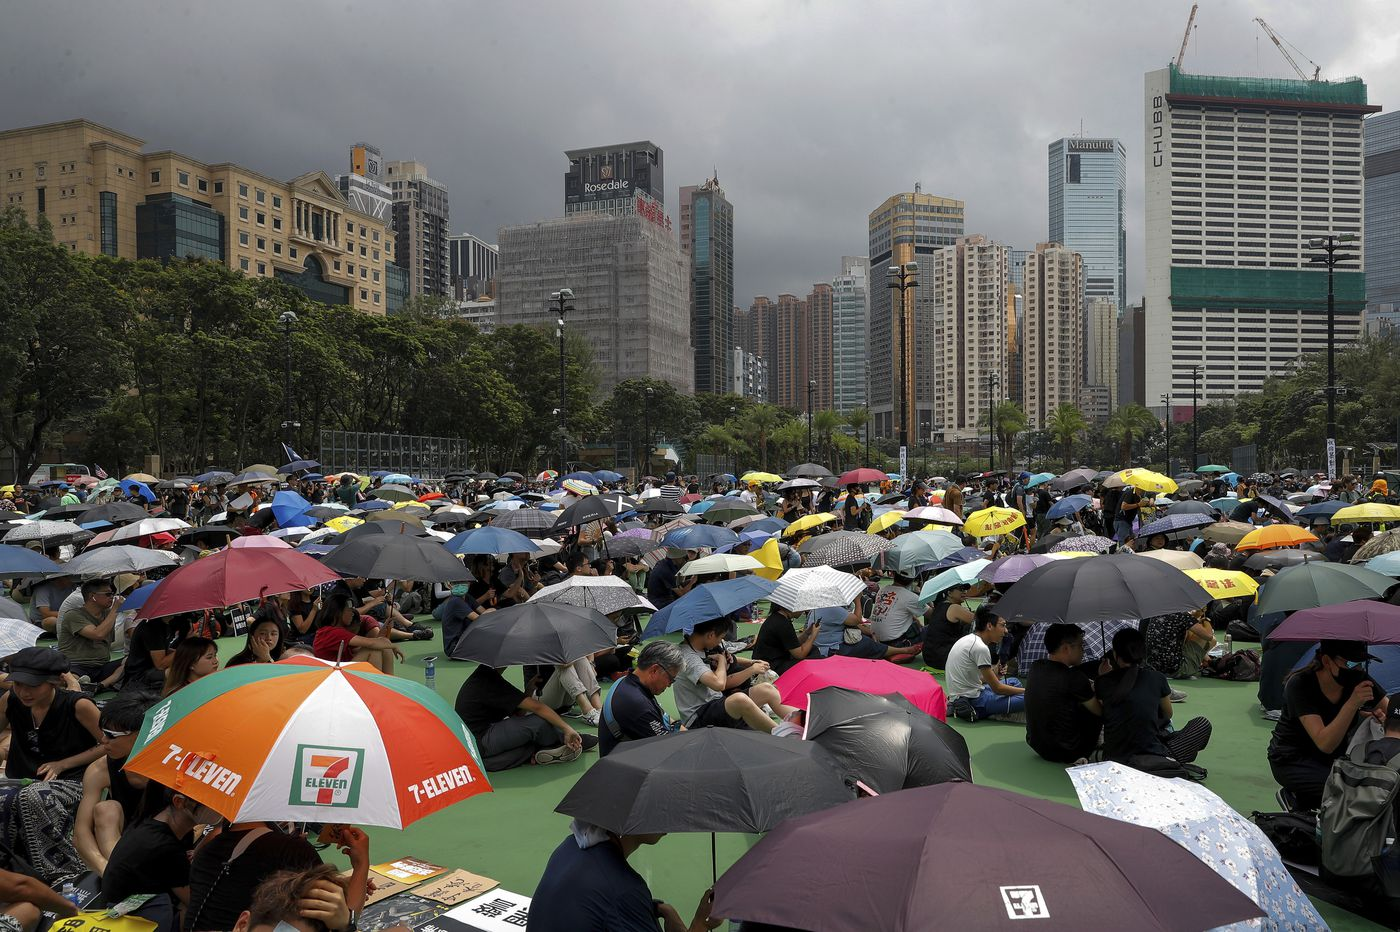 More protests underway in Hong Kong with no end in sight